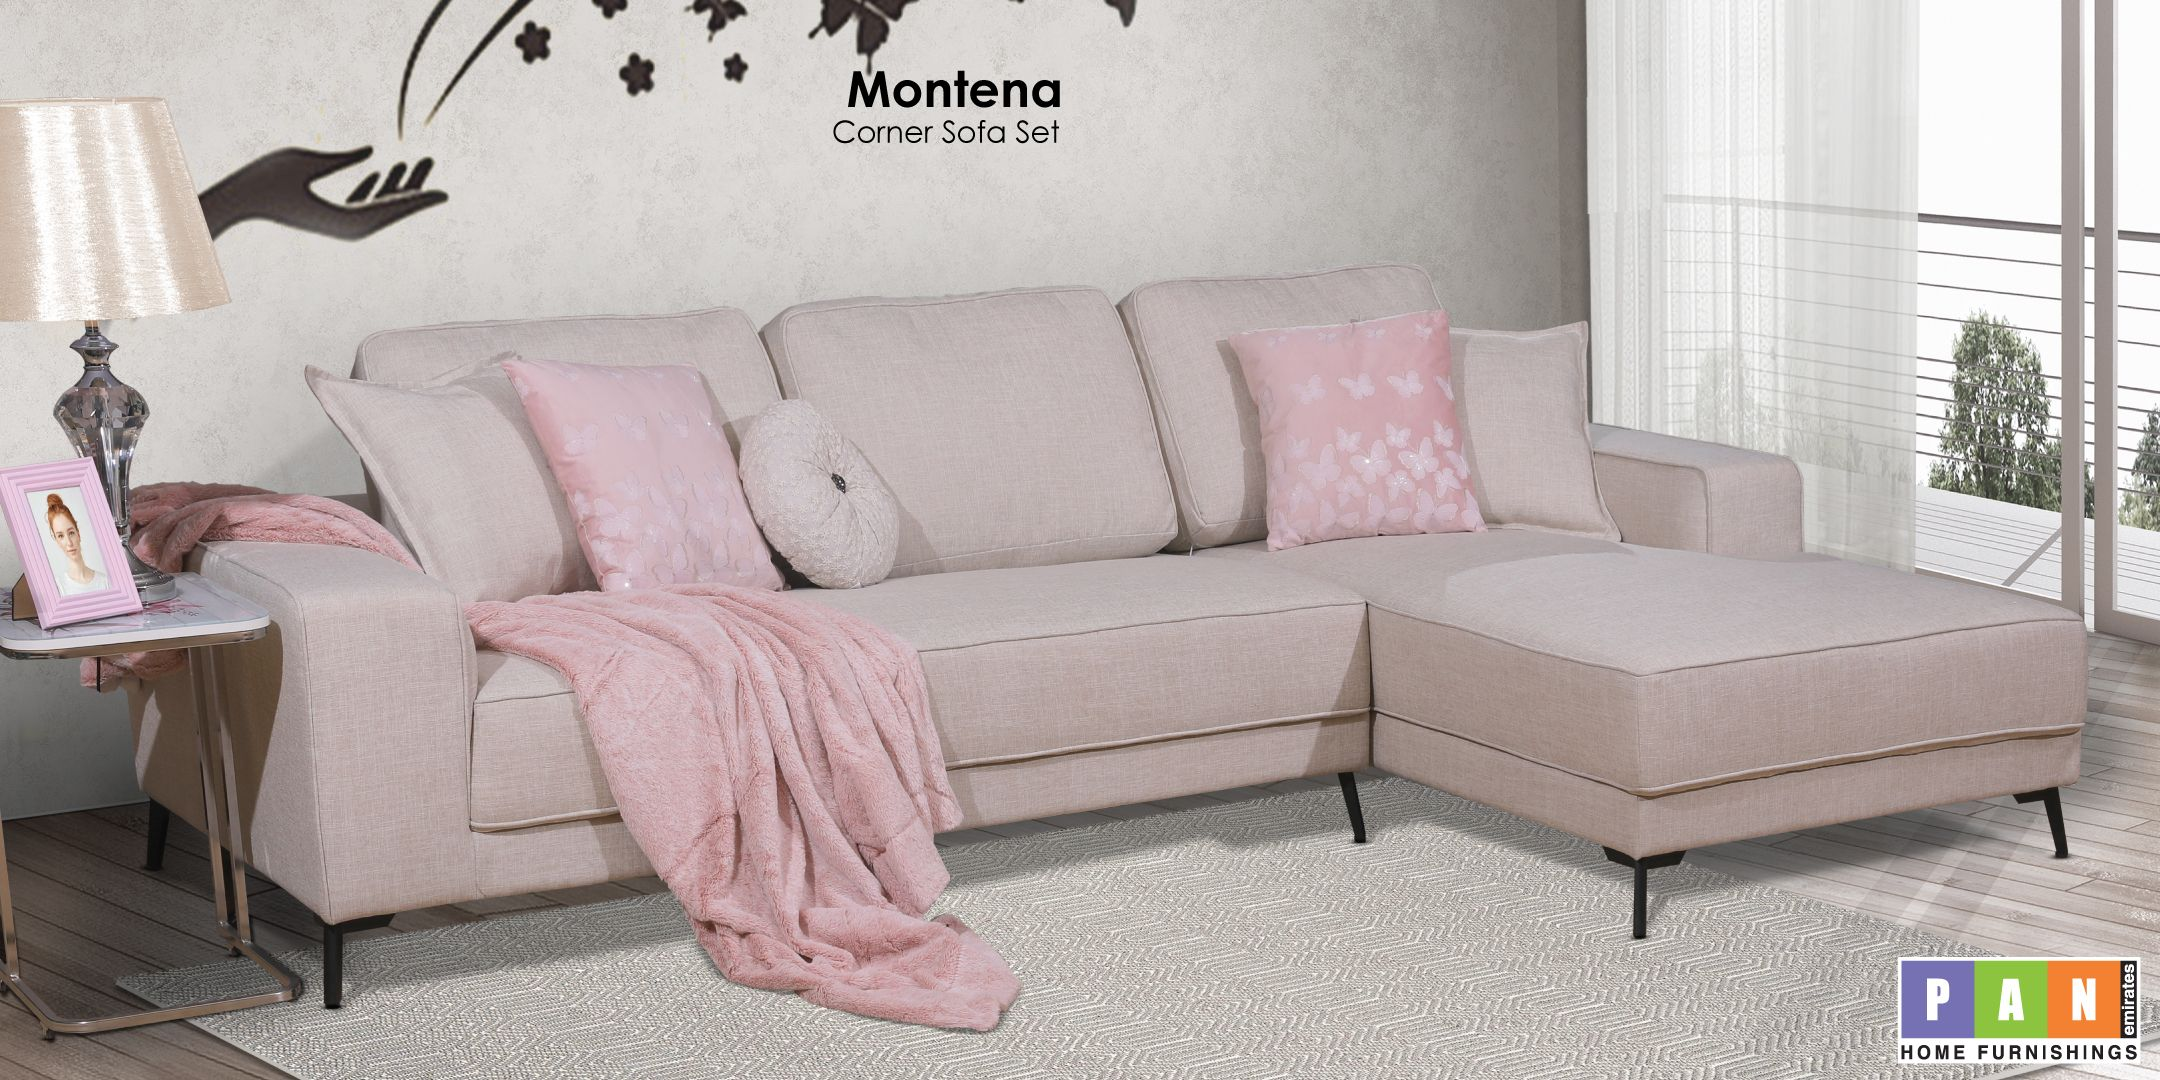 This Chic Corner Sofa Is Sure To Highlight Your Pep Life Go Funky This Spring Amp Your Living Room With The Warmth Of Thi Cozy Sofa Home Furnishings Sofa Set